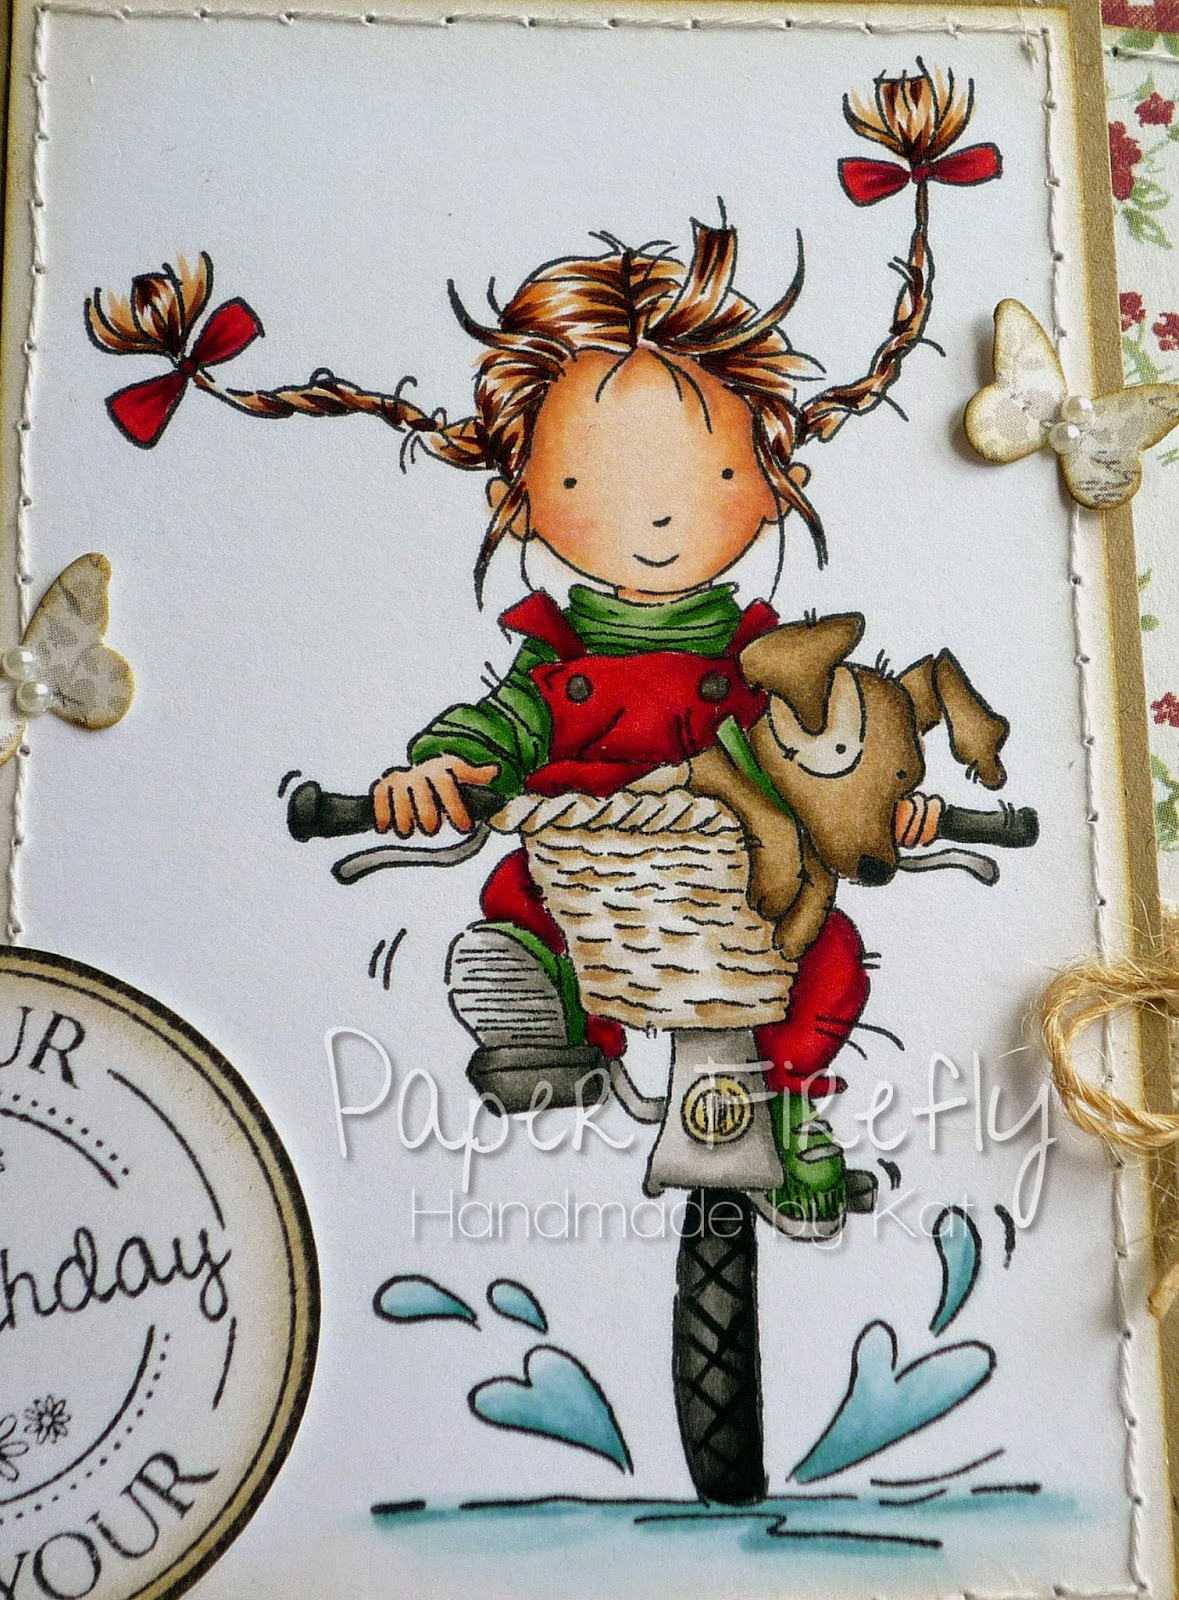 Shaped birthday card with girl and dog on bike